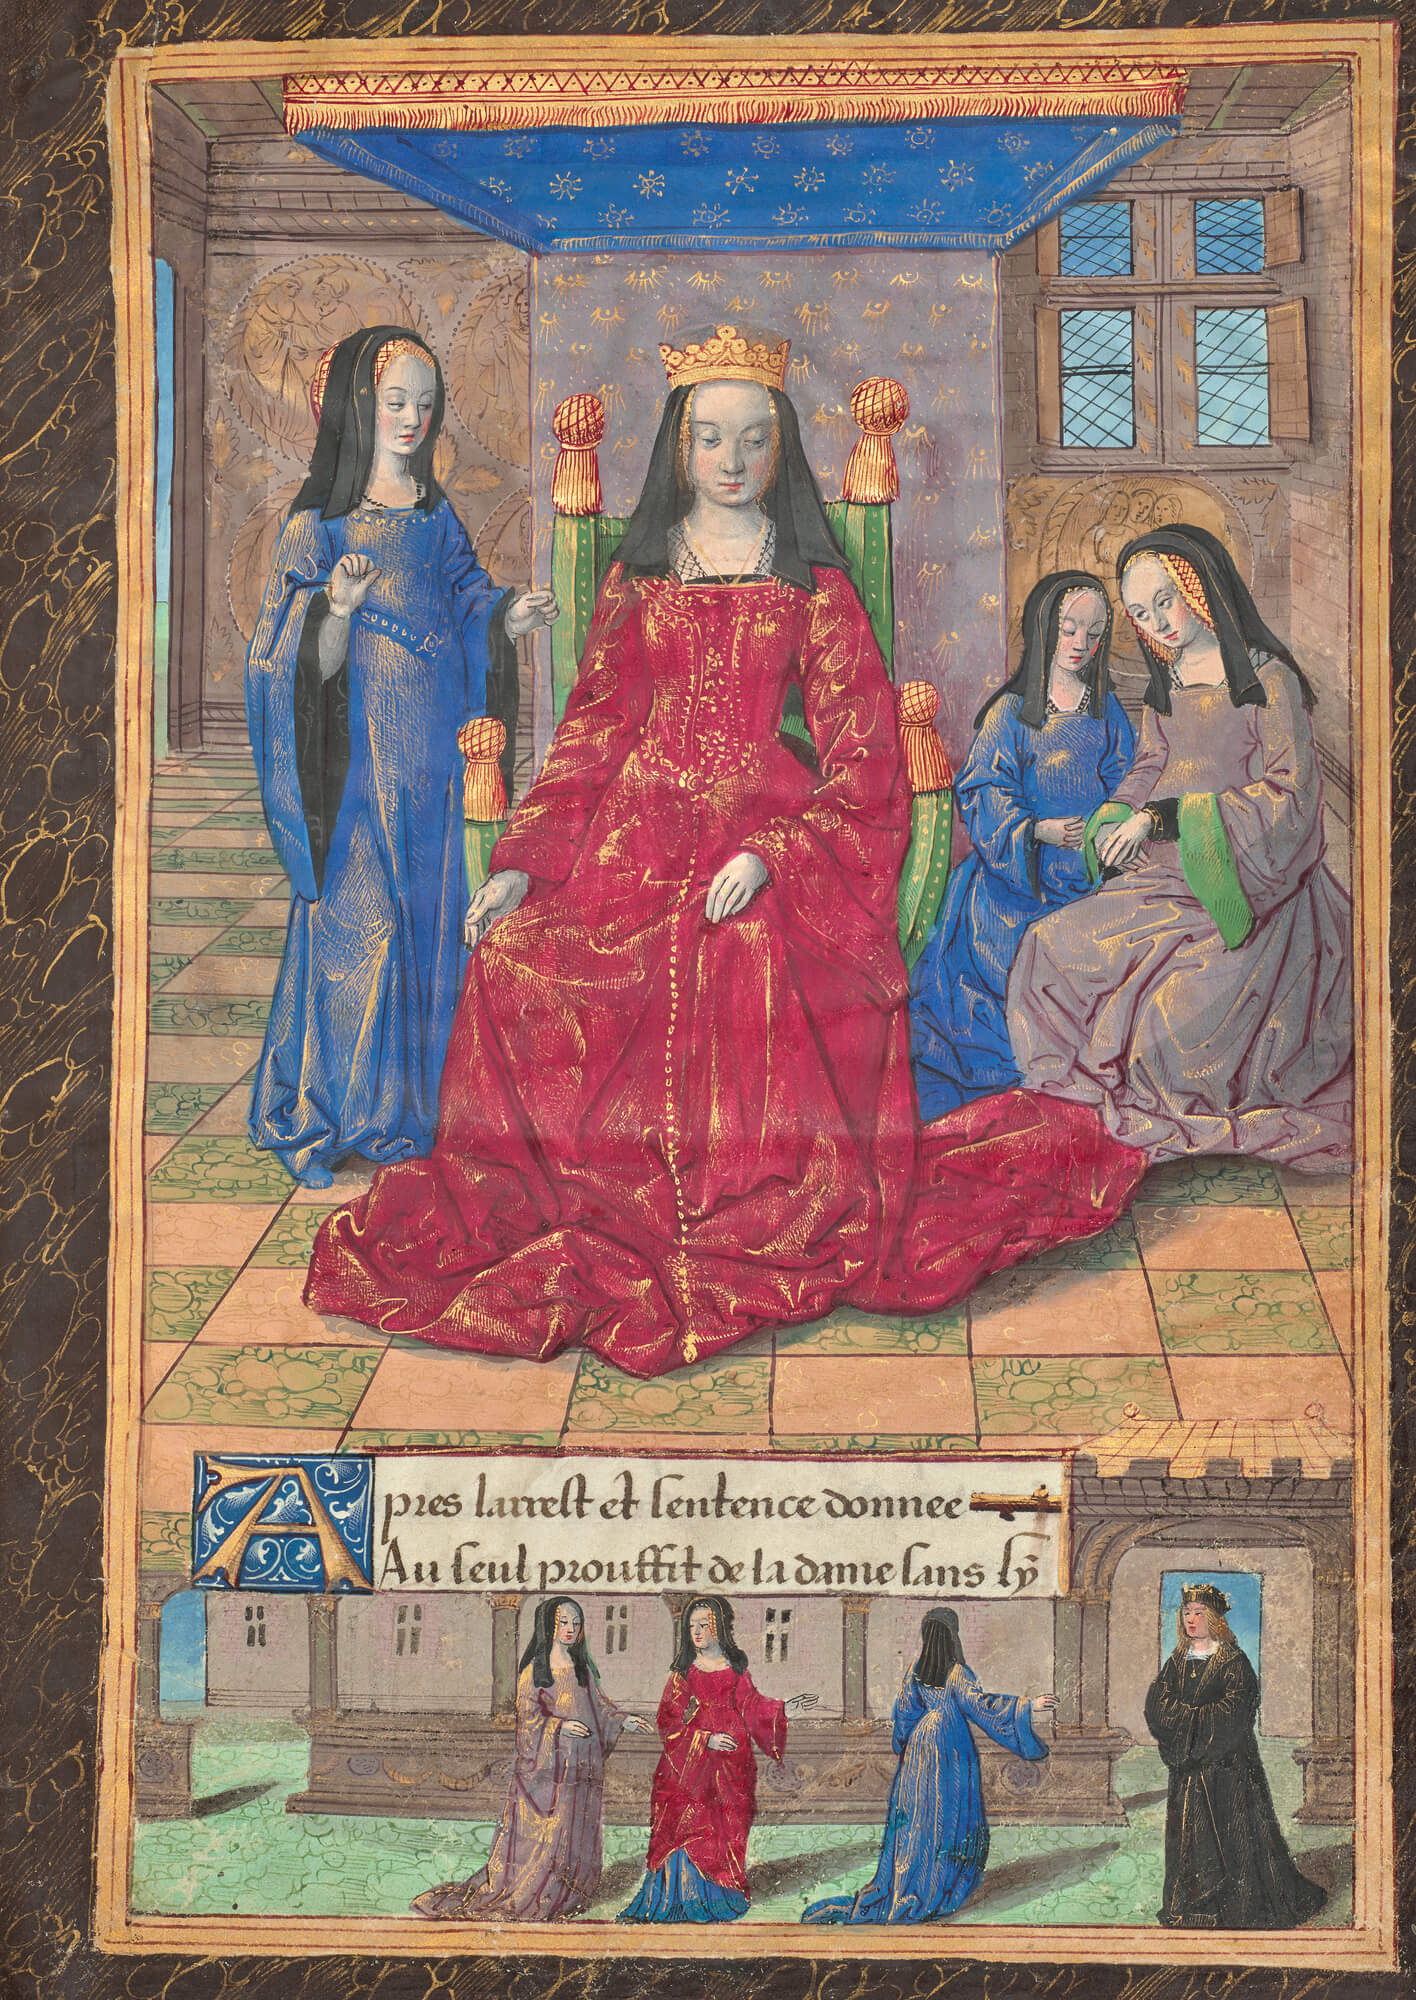 Woman wearing red dress and crown sitting on a throne surrounded by ladies in waiting